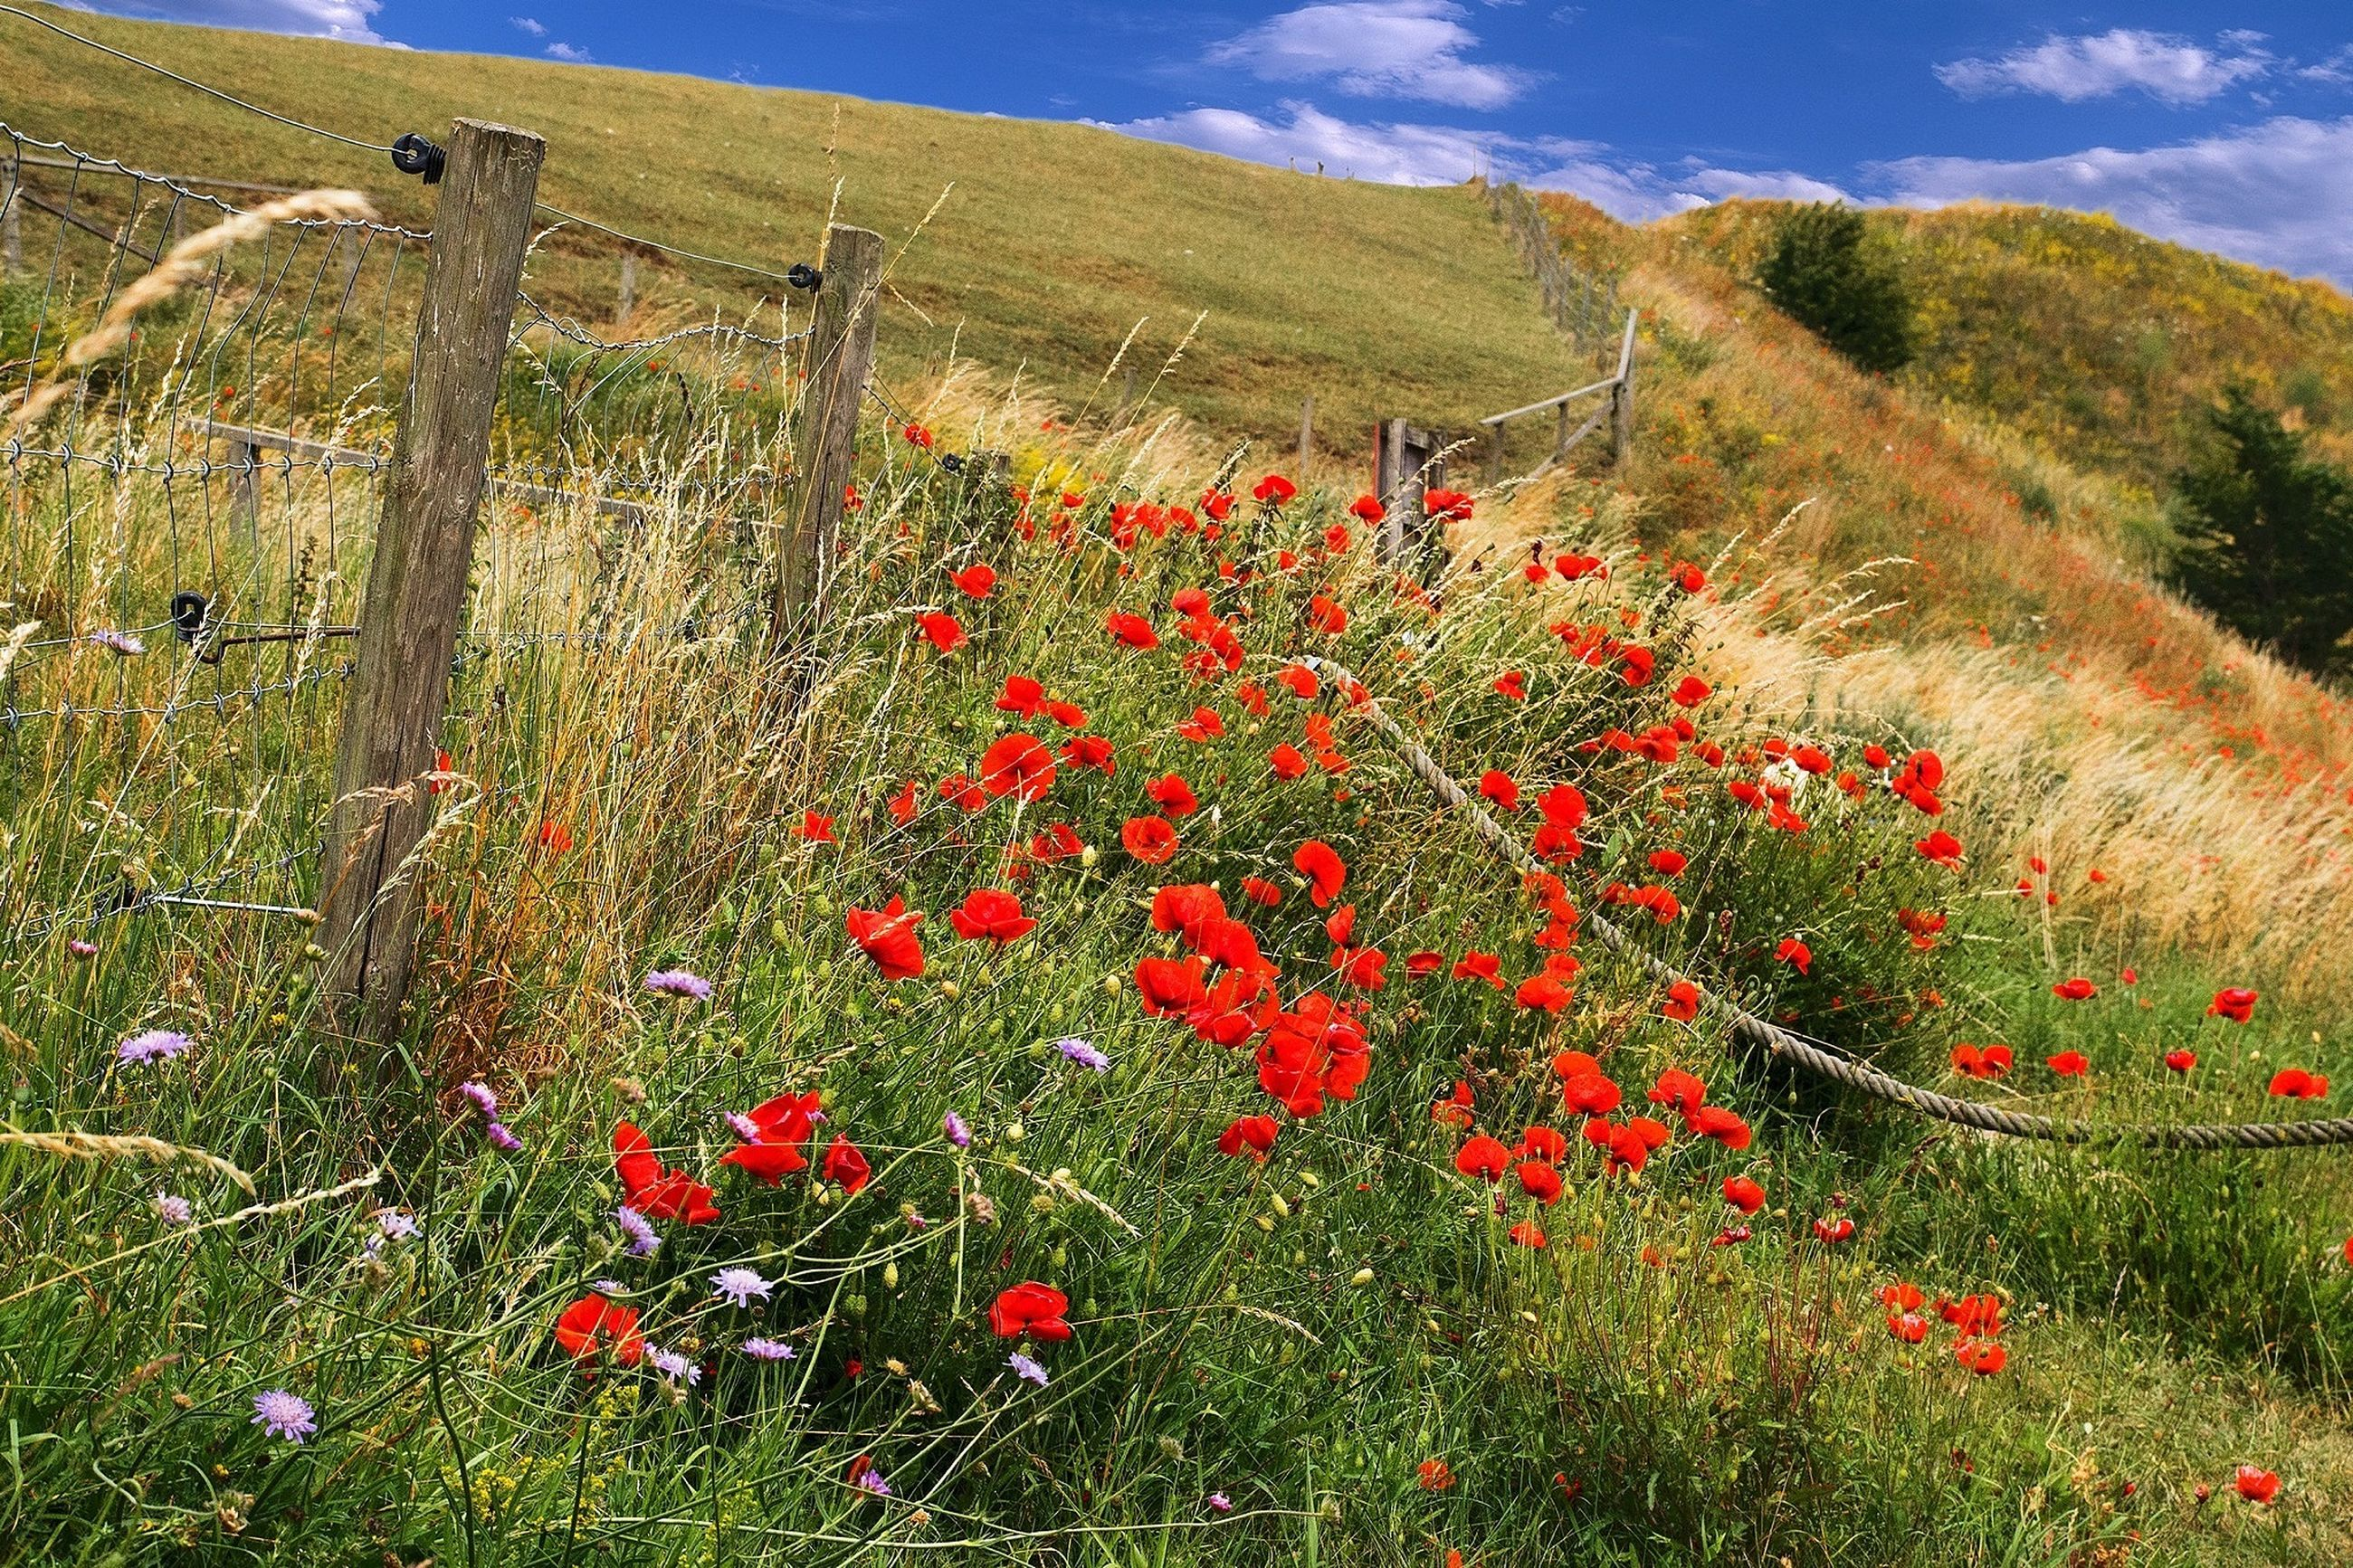 flower, growth, beauty in nature, plant, freshness, red, nature, landscape, field, mountain, tranquility, tranquil scene, grass, sky, scenics, fragility, blooming, poppy, green color, day